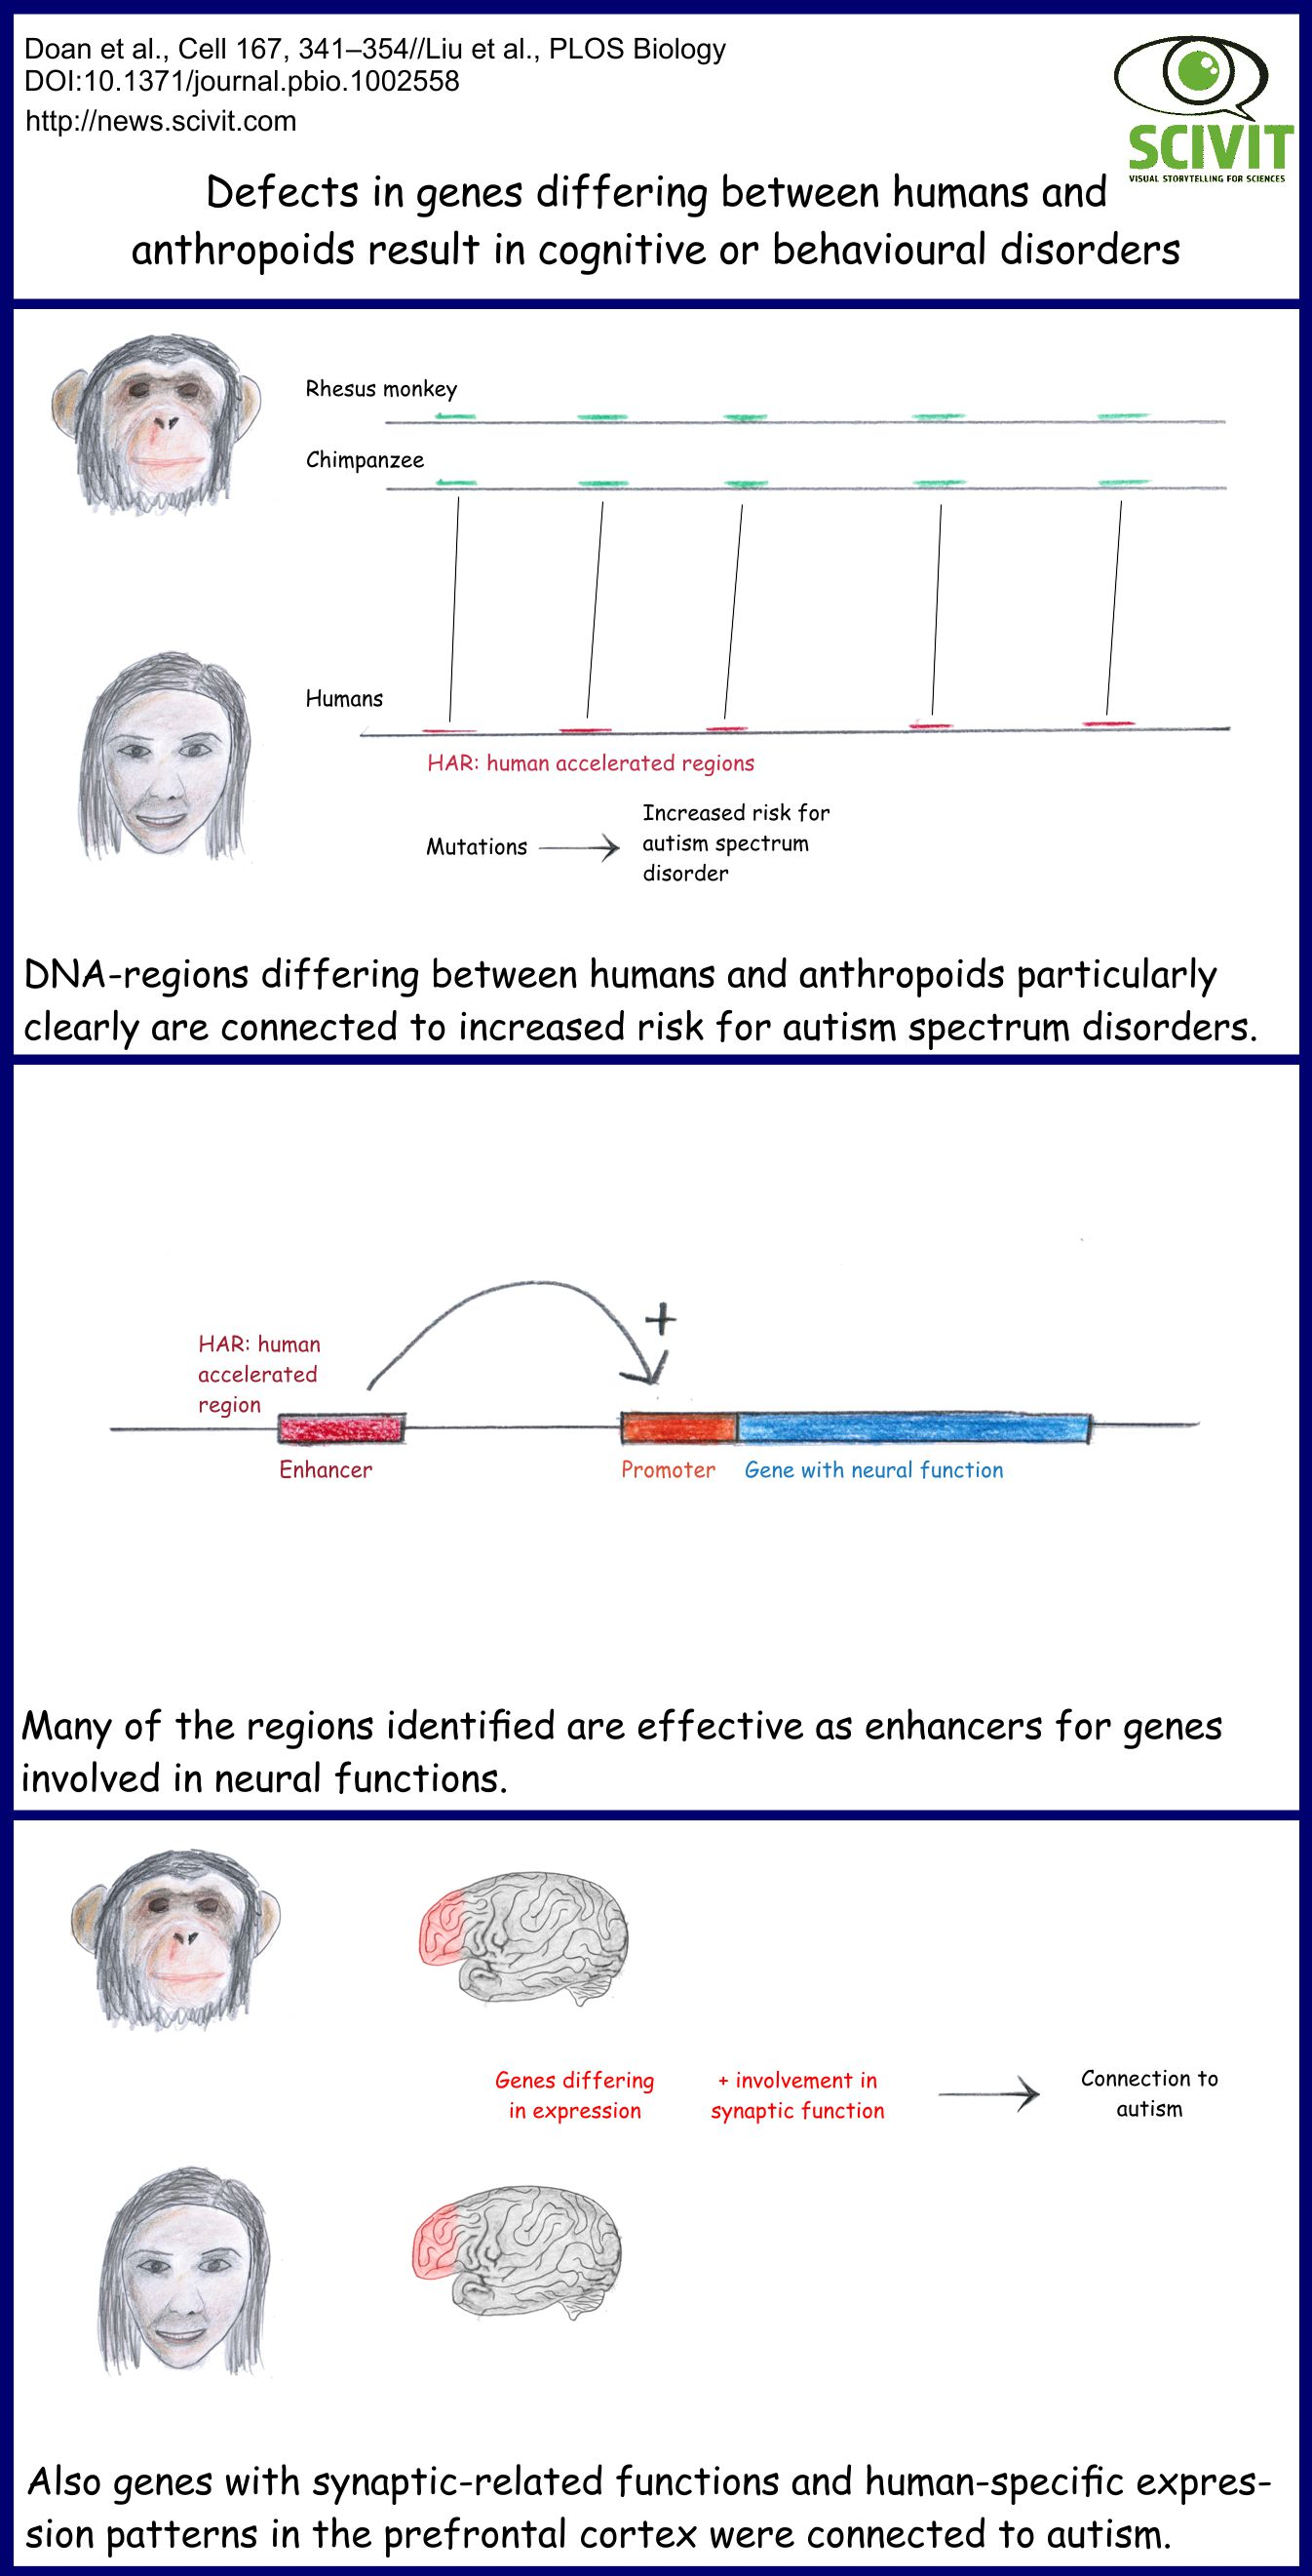 DNA-regions particularly differing between humans and their closest relatives are connected to an increased risk for autism. Many of the regions identified were active as enhancers for genes involved in neural functions. Also a group of genes with synaptic-related functions and human-specific expression pattern in the pre-frontal cortex was connected to autism.